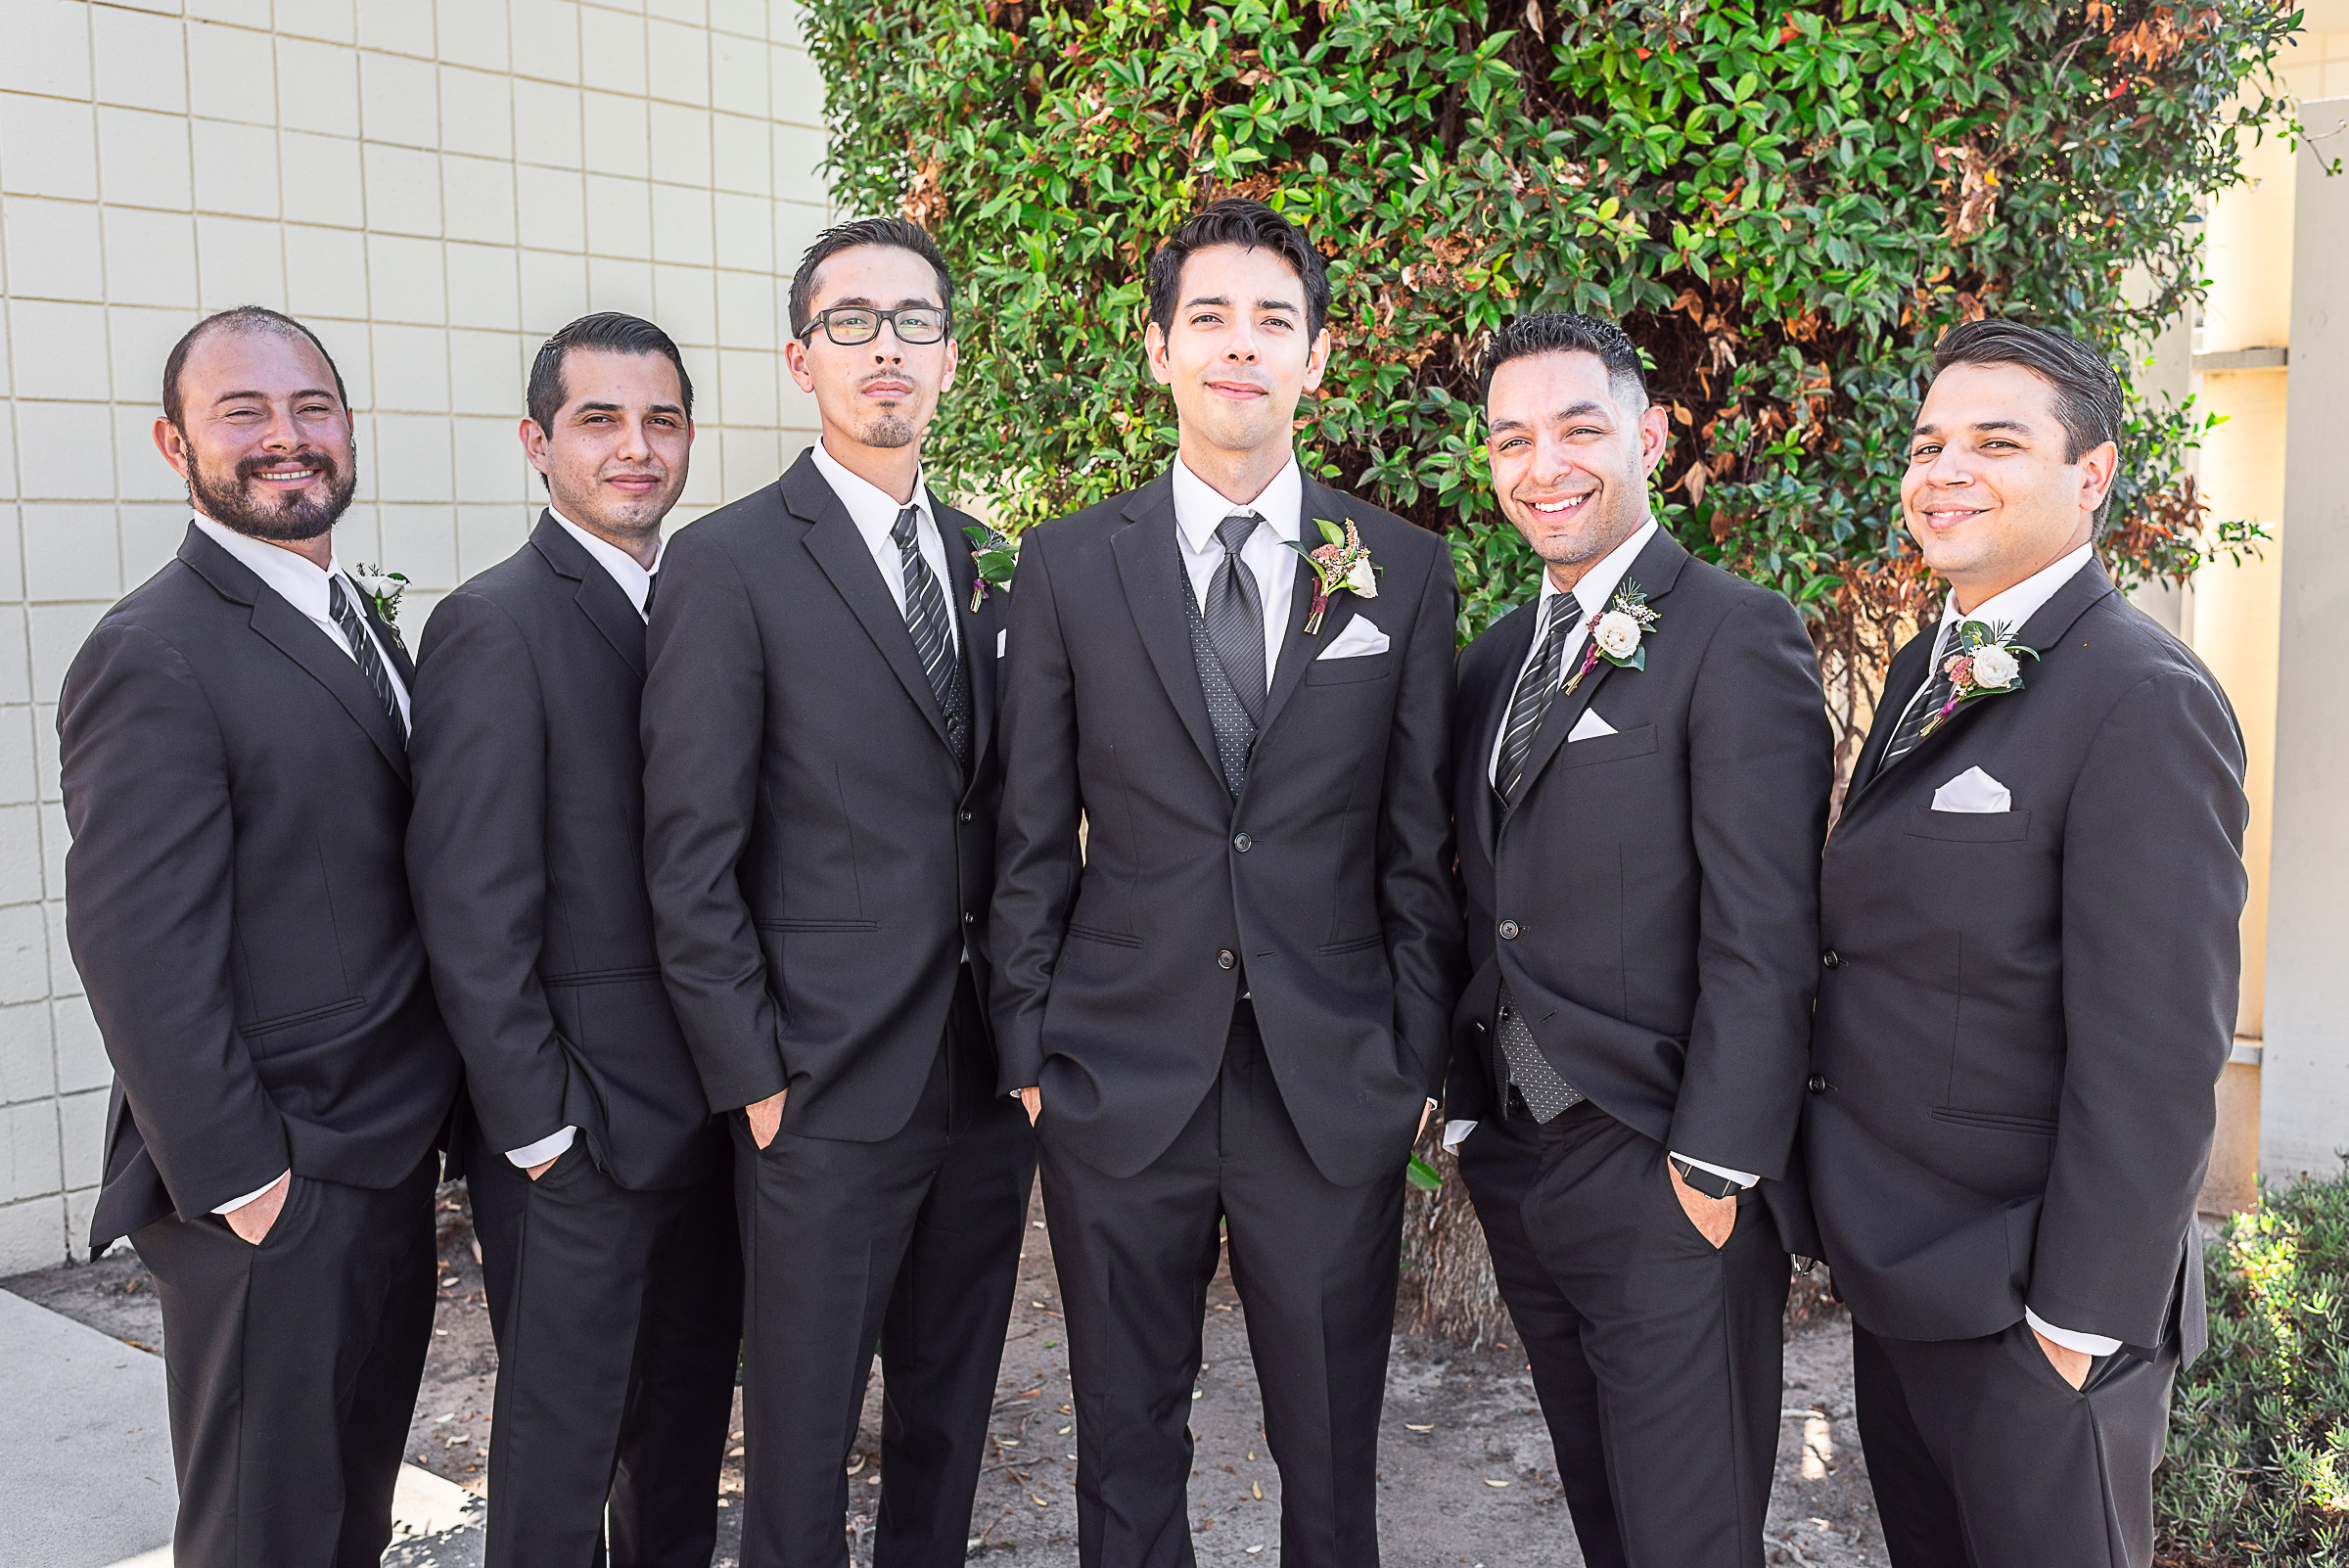 Bianca and Robert's Wedding at St. Rose of Lima and Eastlake Country Club Chula Vista-16.jpg